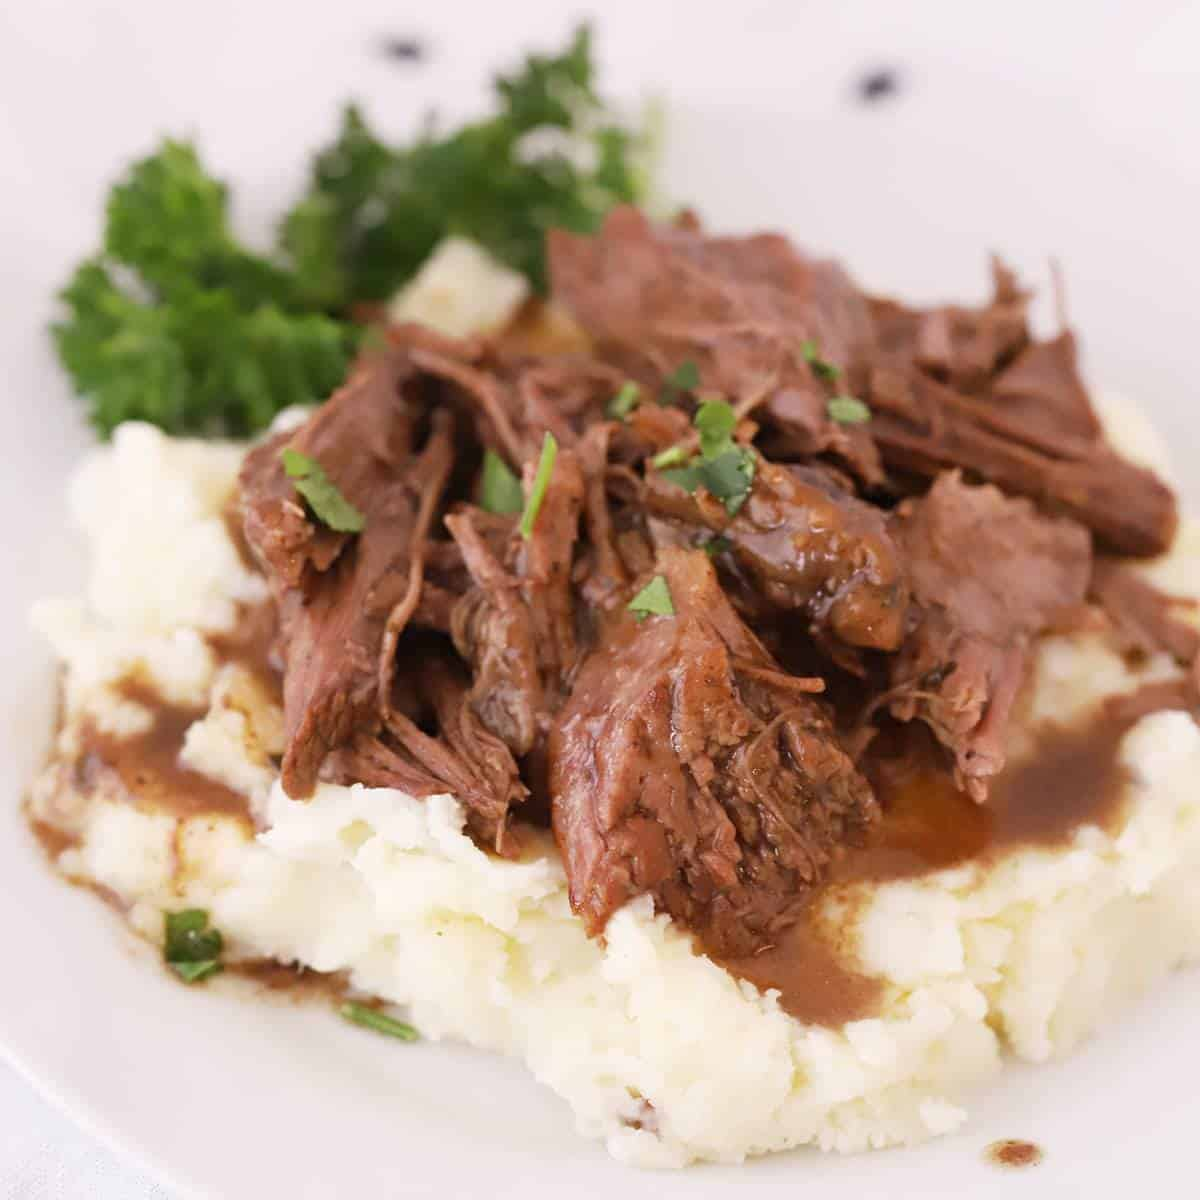 mississippi Pot Roast on mashed potatoes